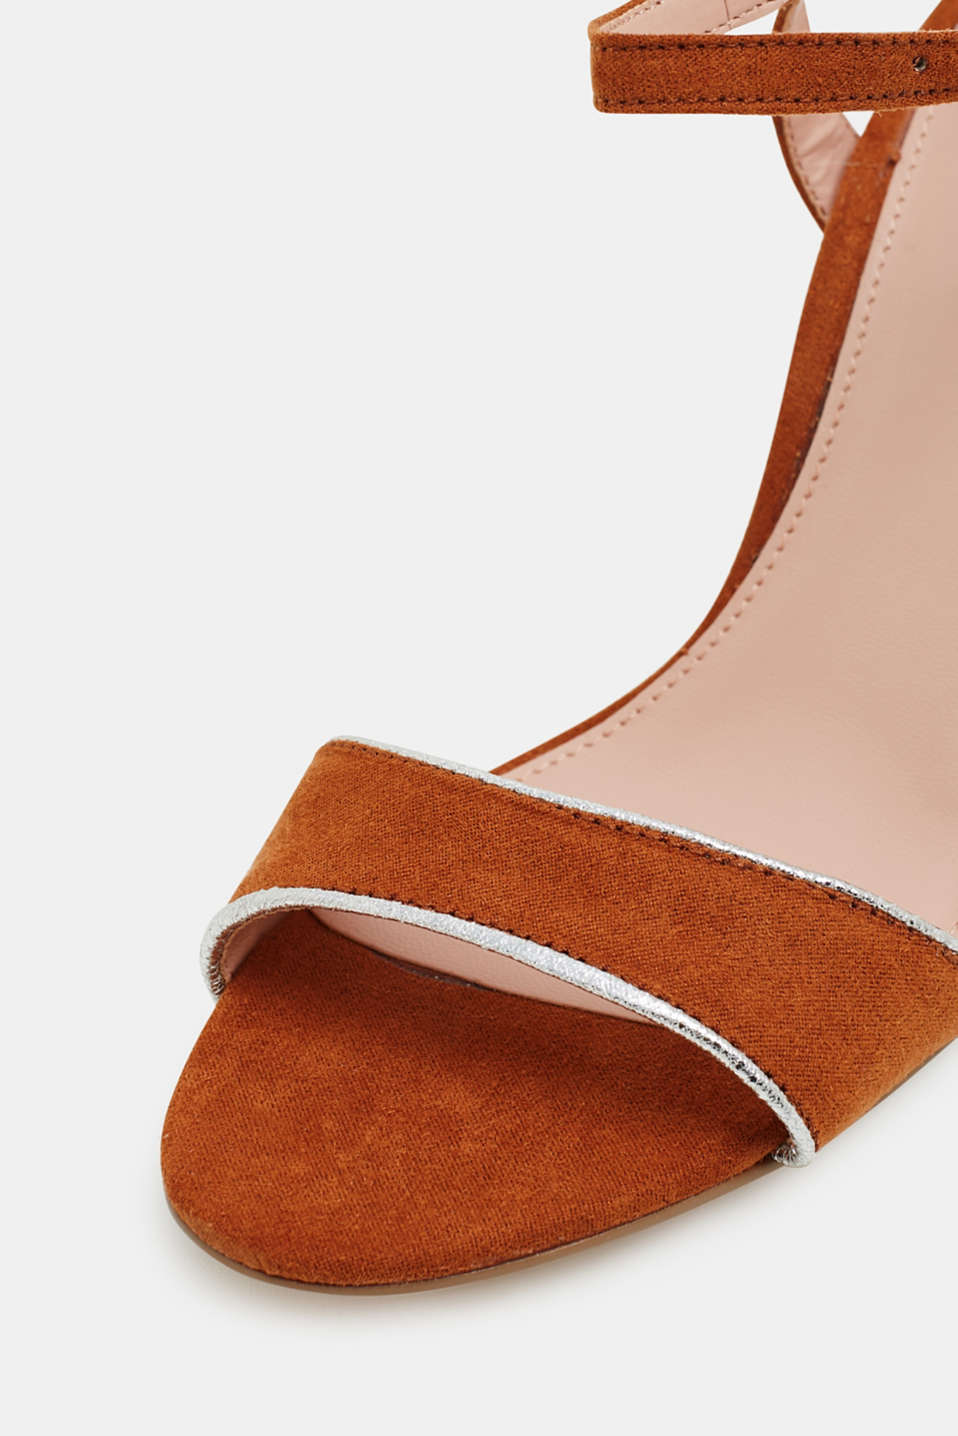 Suede sandals with metallic accents, RUST BROWN, detail image number 4